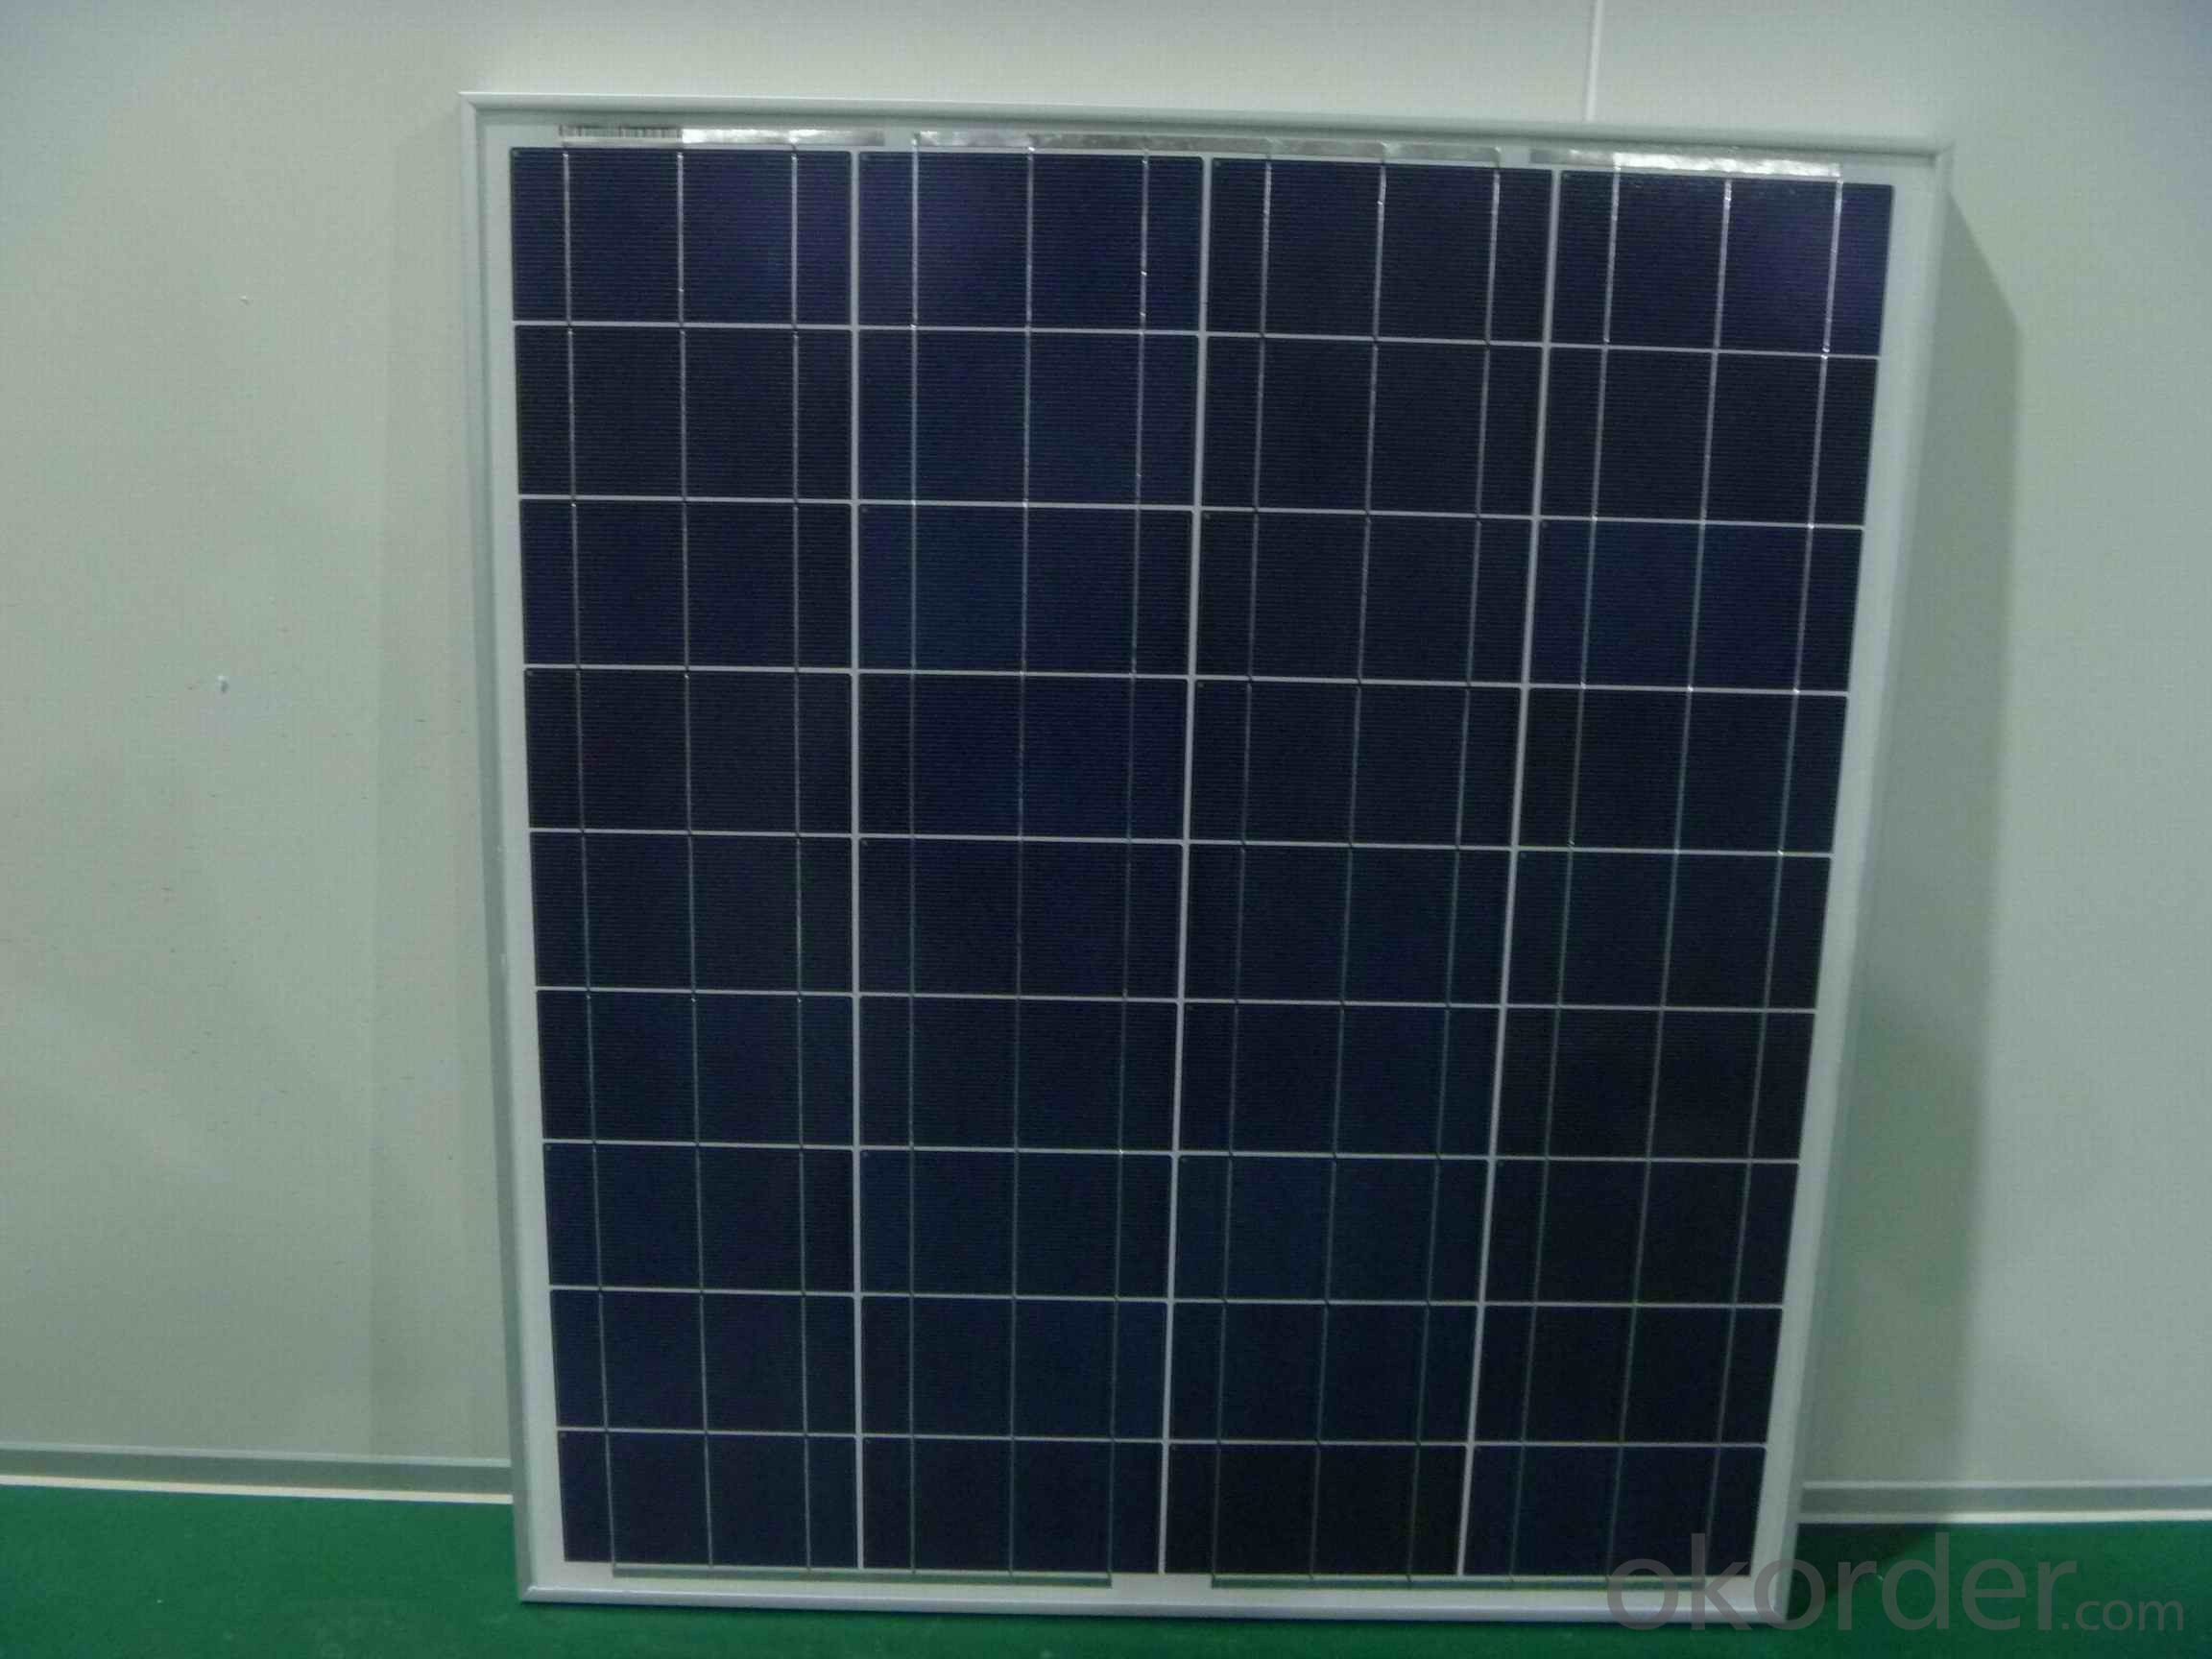 80W Poly Crystalline Solar Panels with Efficiency of 15.4%